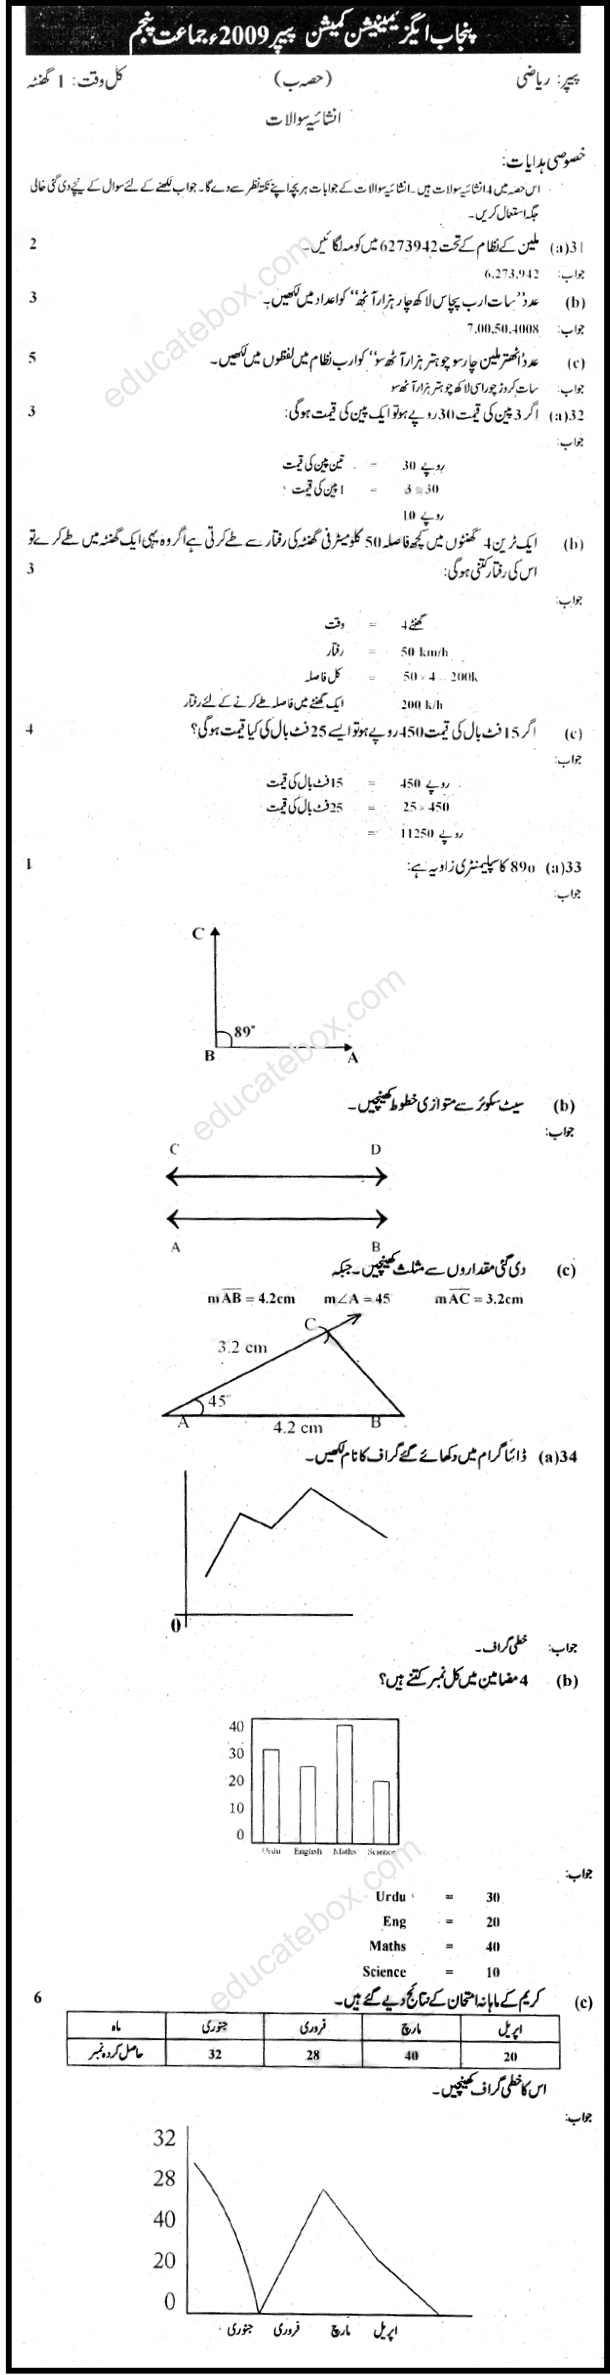 Past Paper Class 5 Maths Punjab Education Commission 2009 Solved Paper Subjective Type